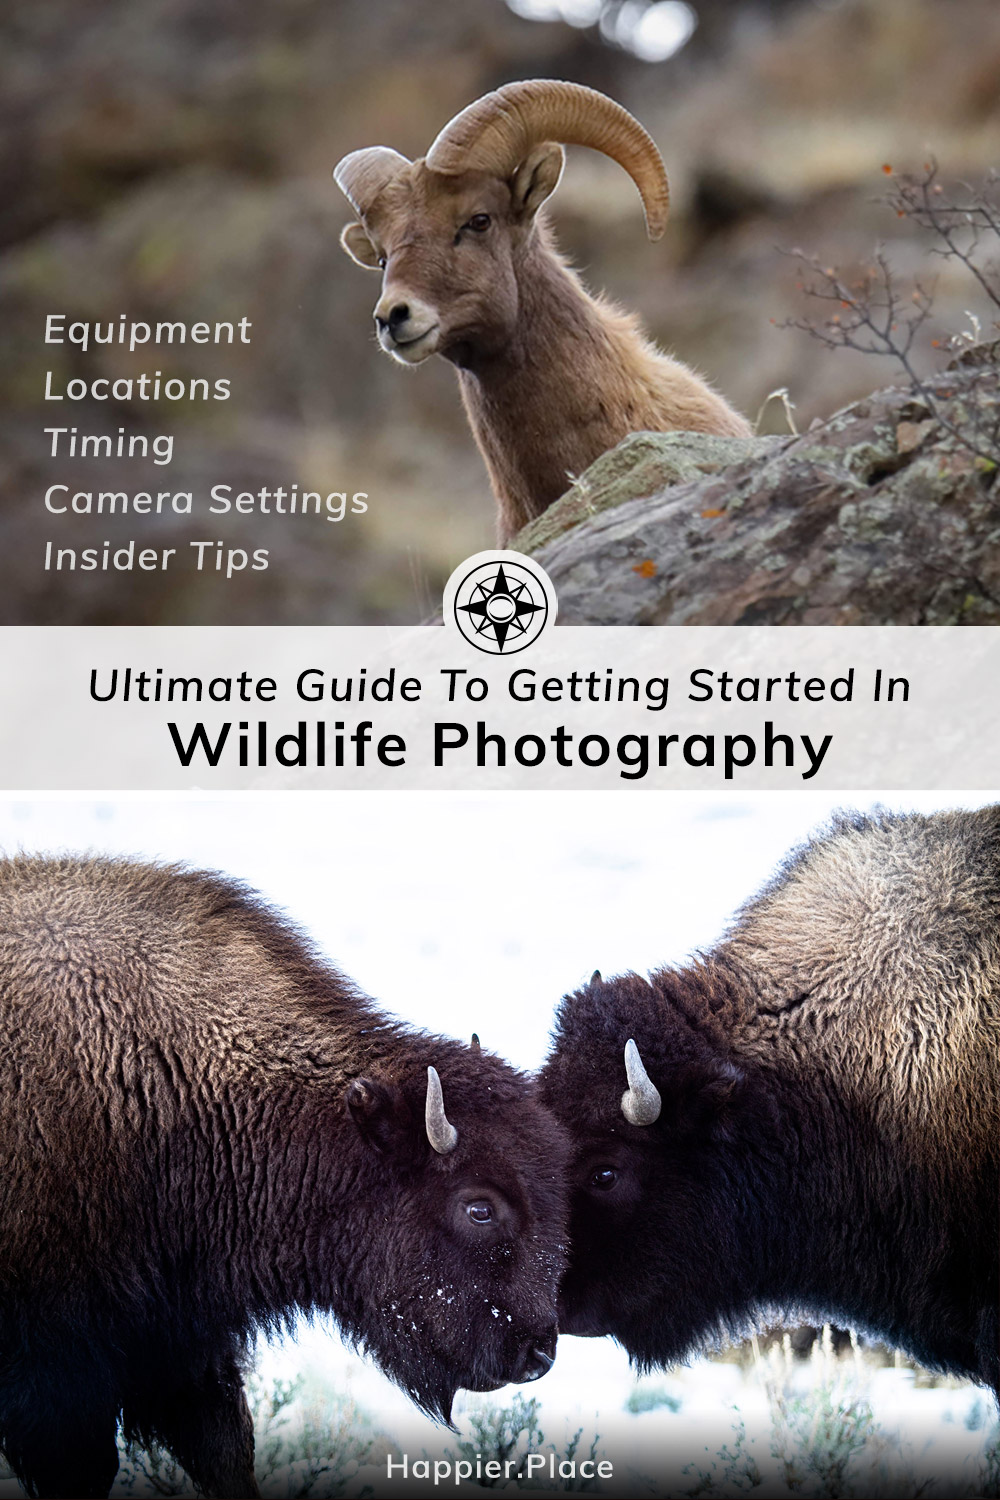 Ultimate Guide to getting started in wildlife photography, equipment, locations, timing, camera settings, insider tips, Happier Place, bison, bighorn sheep